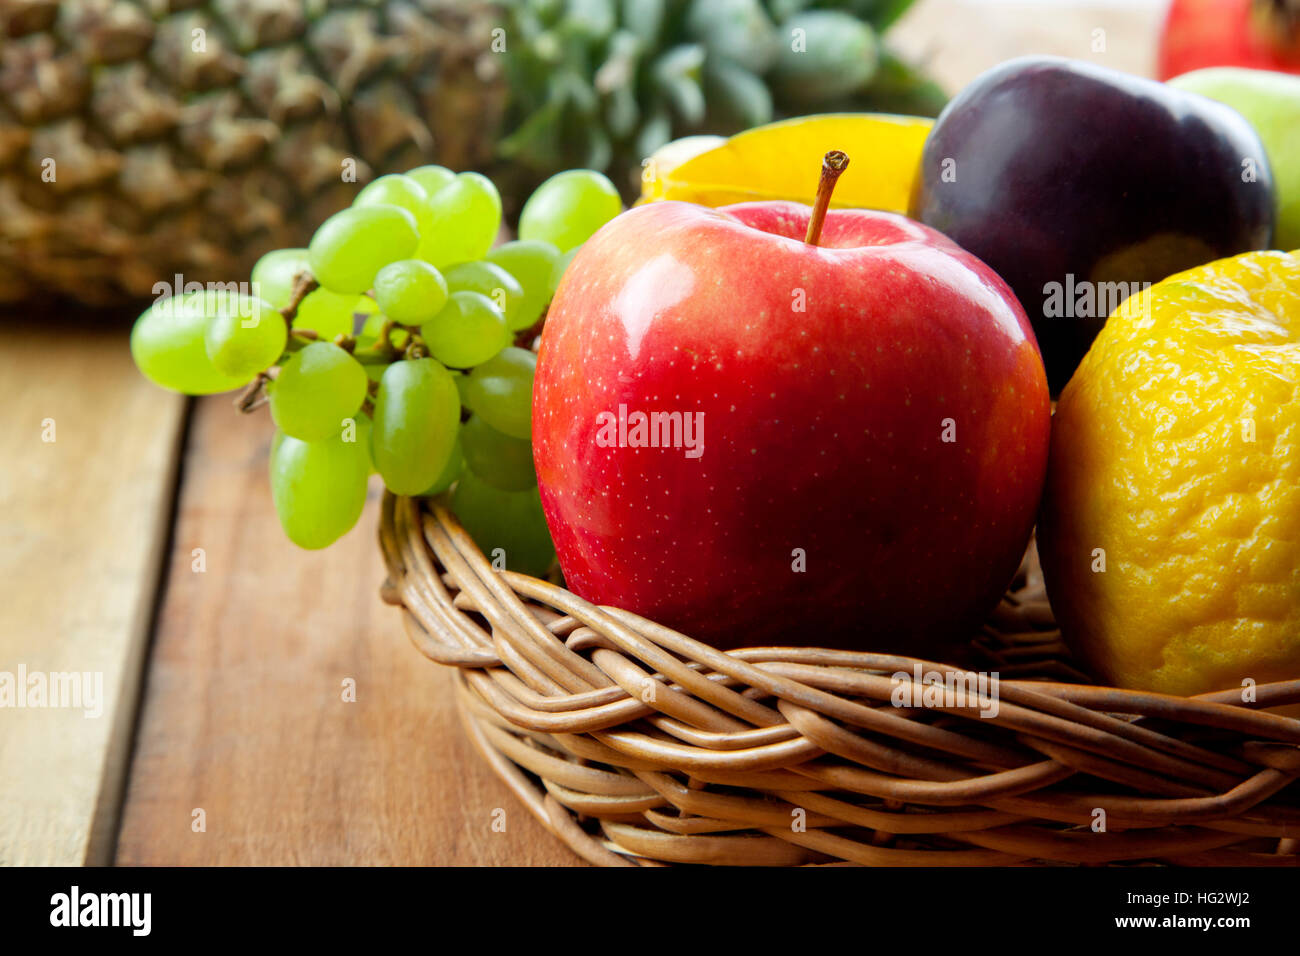 Wicker Basket Filled With Fresh Fruits Stock Photo 130371082 Alamy